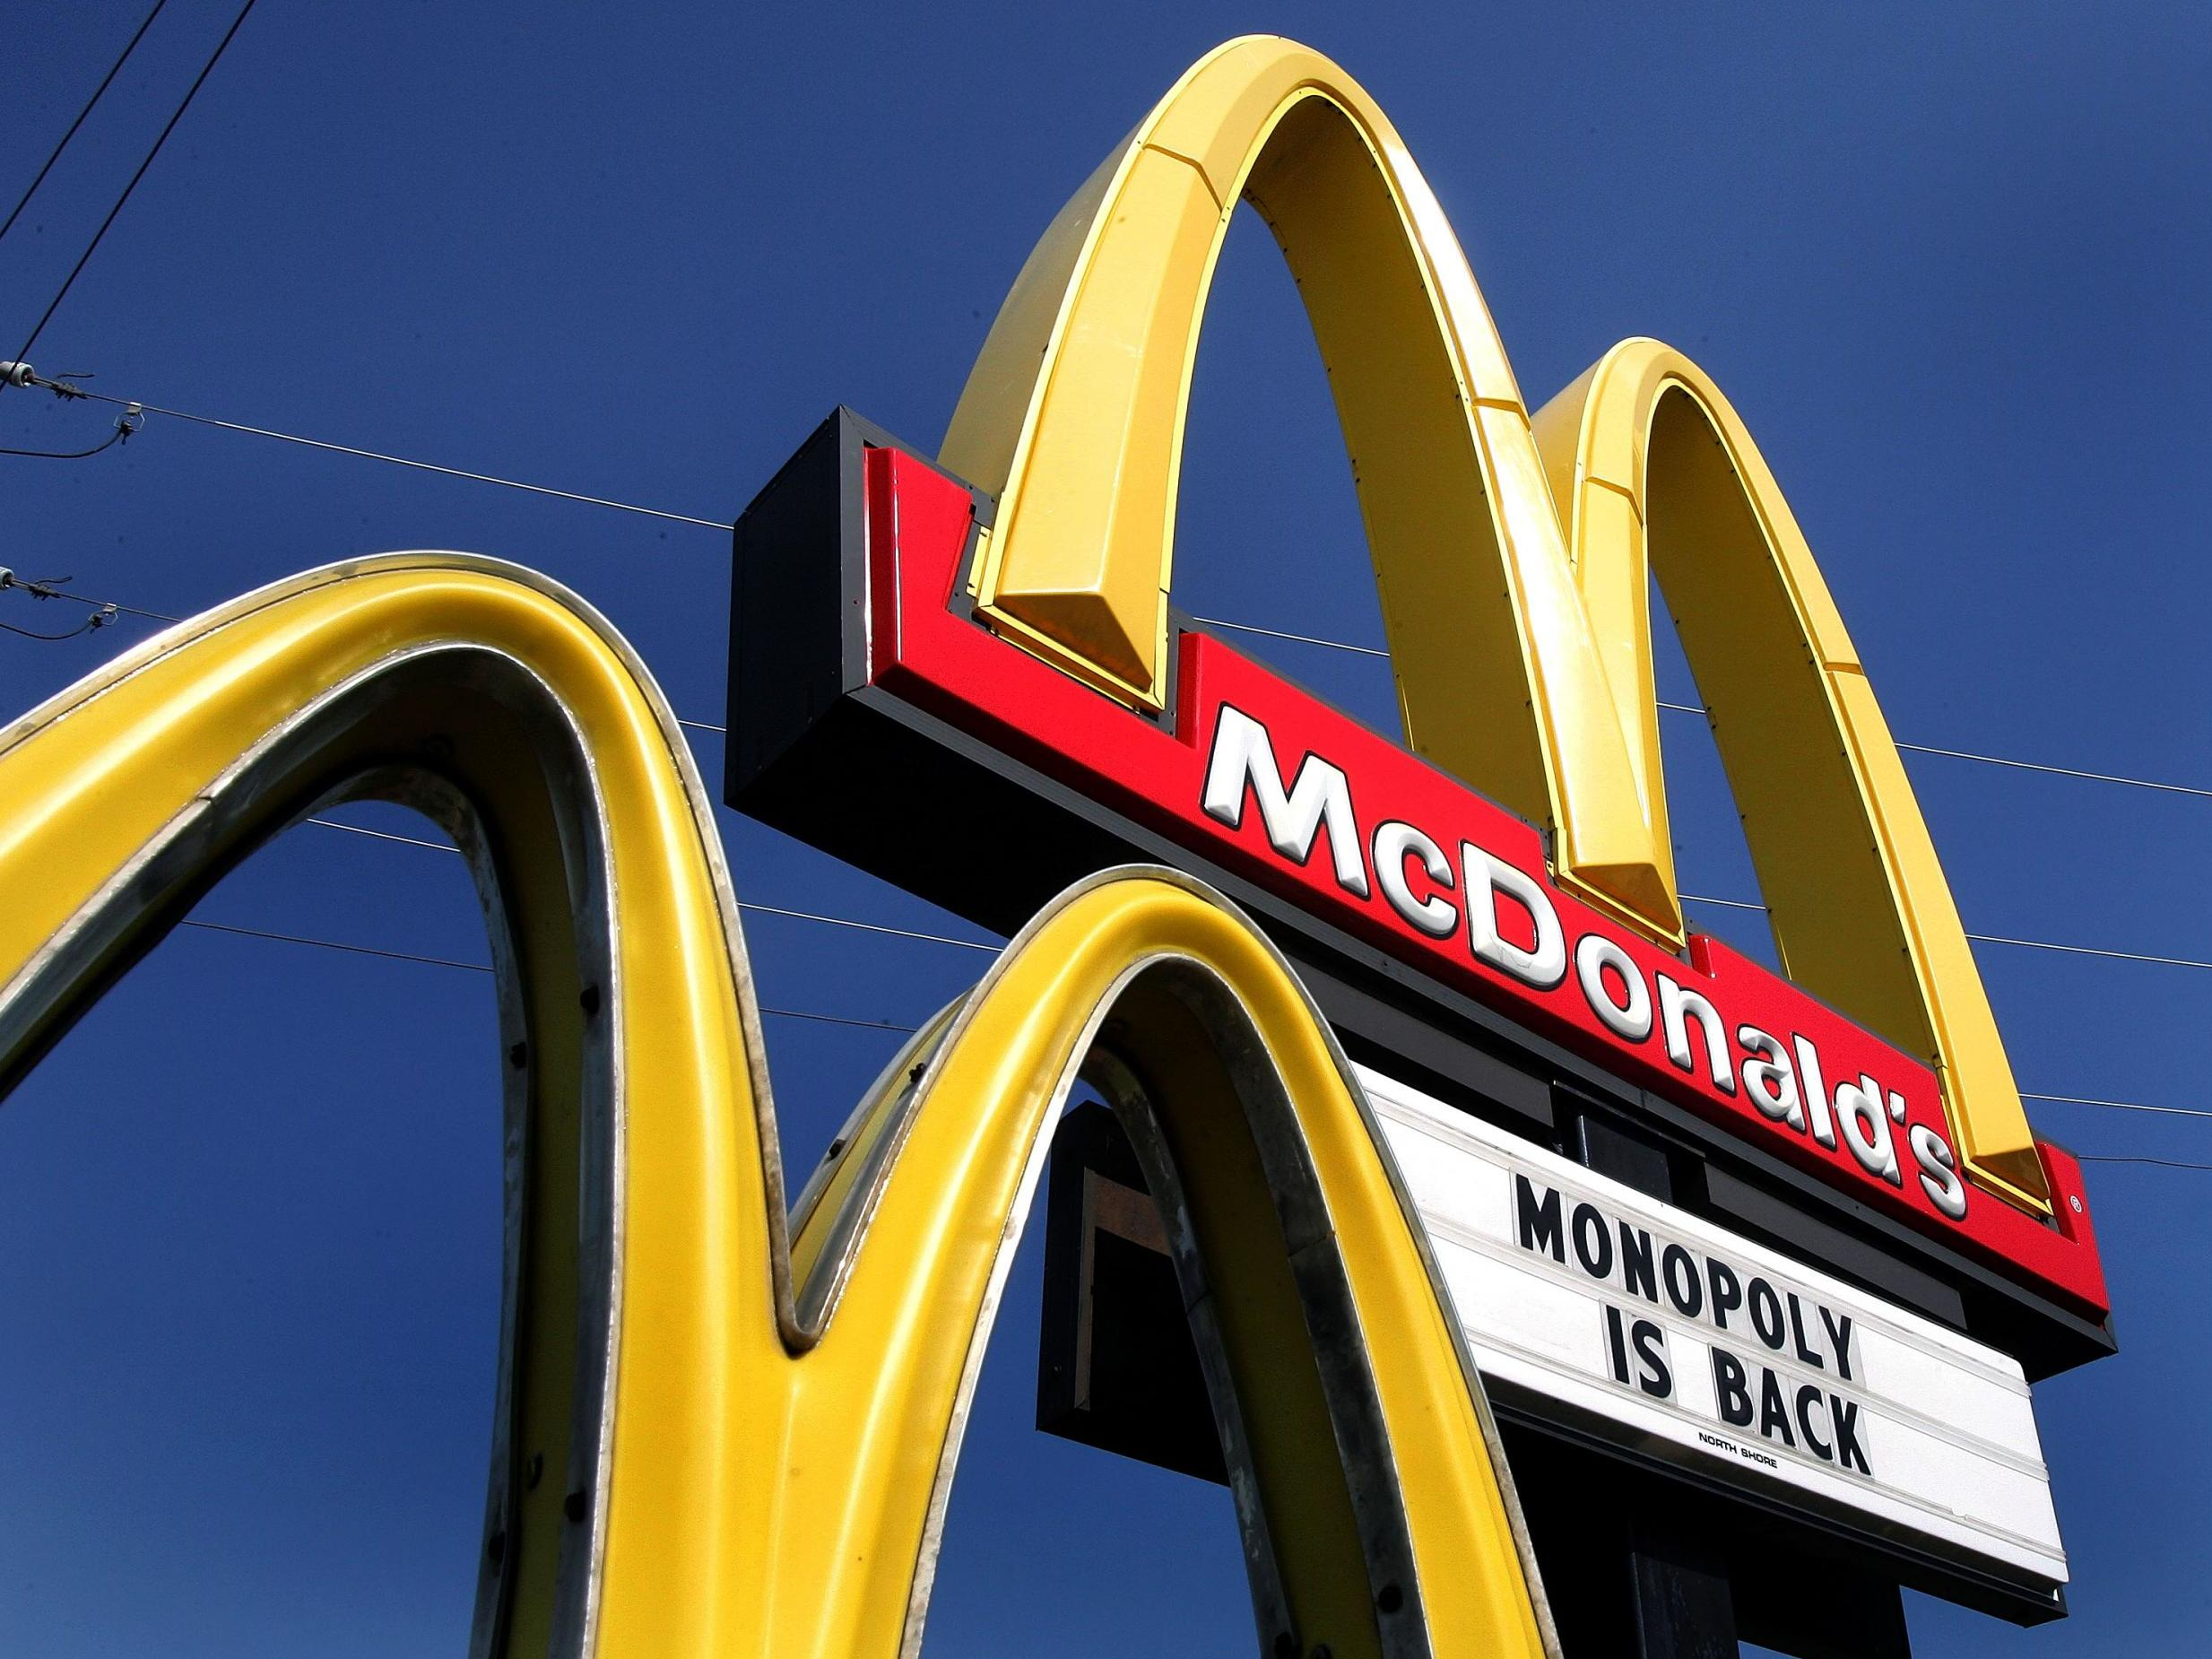 McDonald's Monopoly: Customers angry over reduced number of stickers on large meals 1